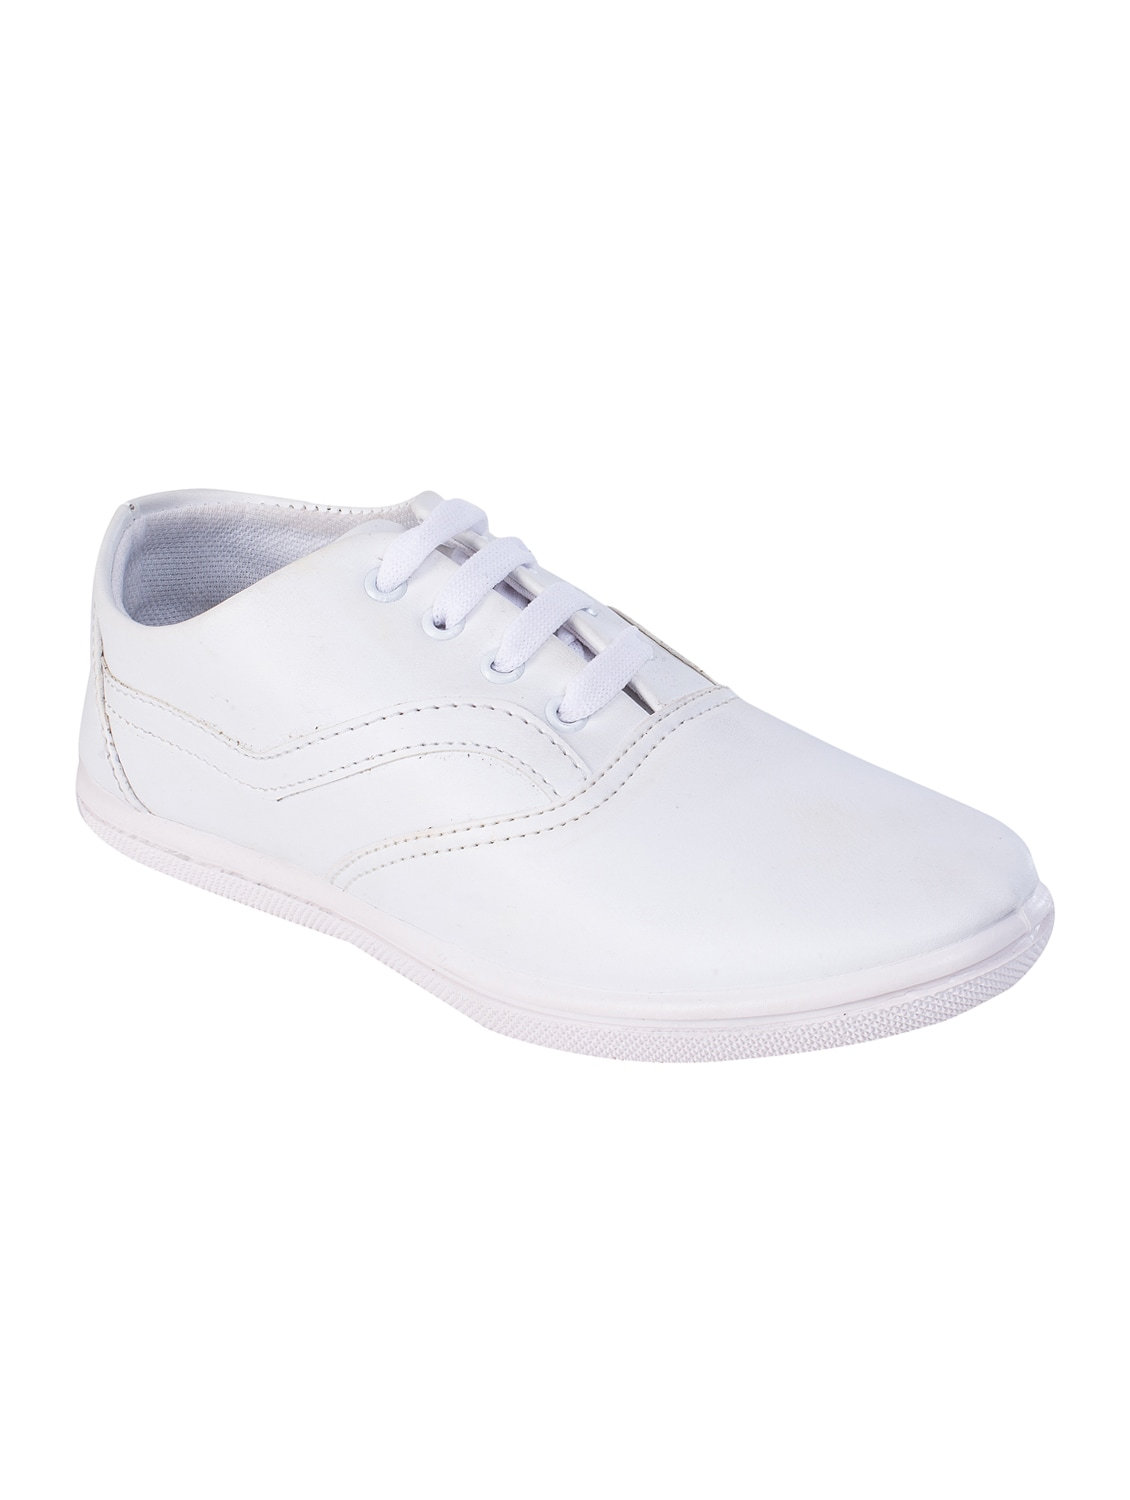 Buy online White Leatherette Lace Up